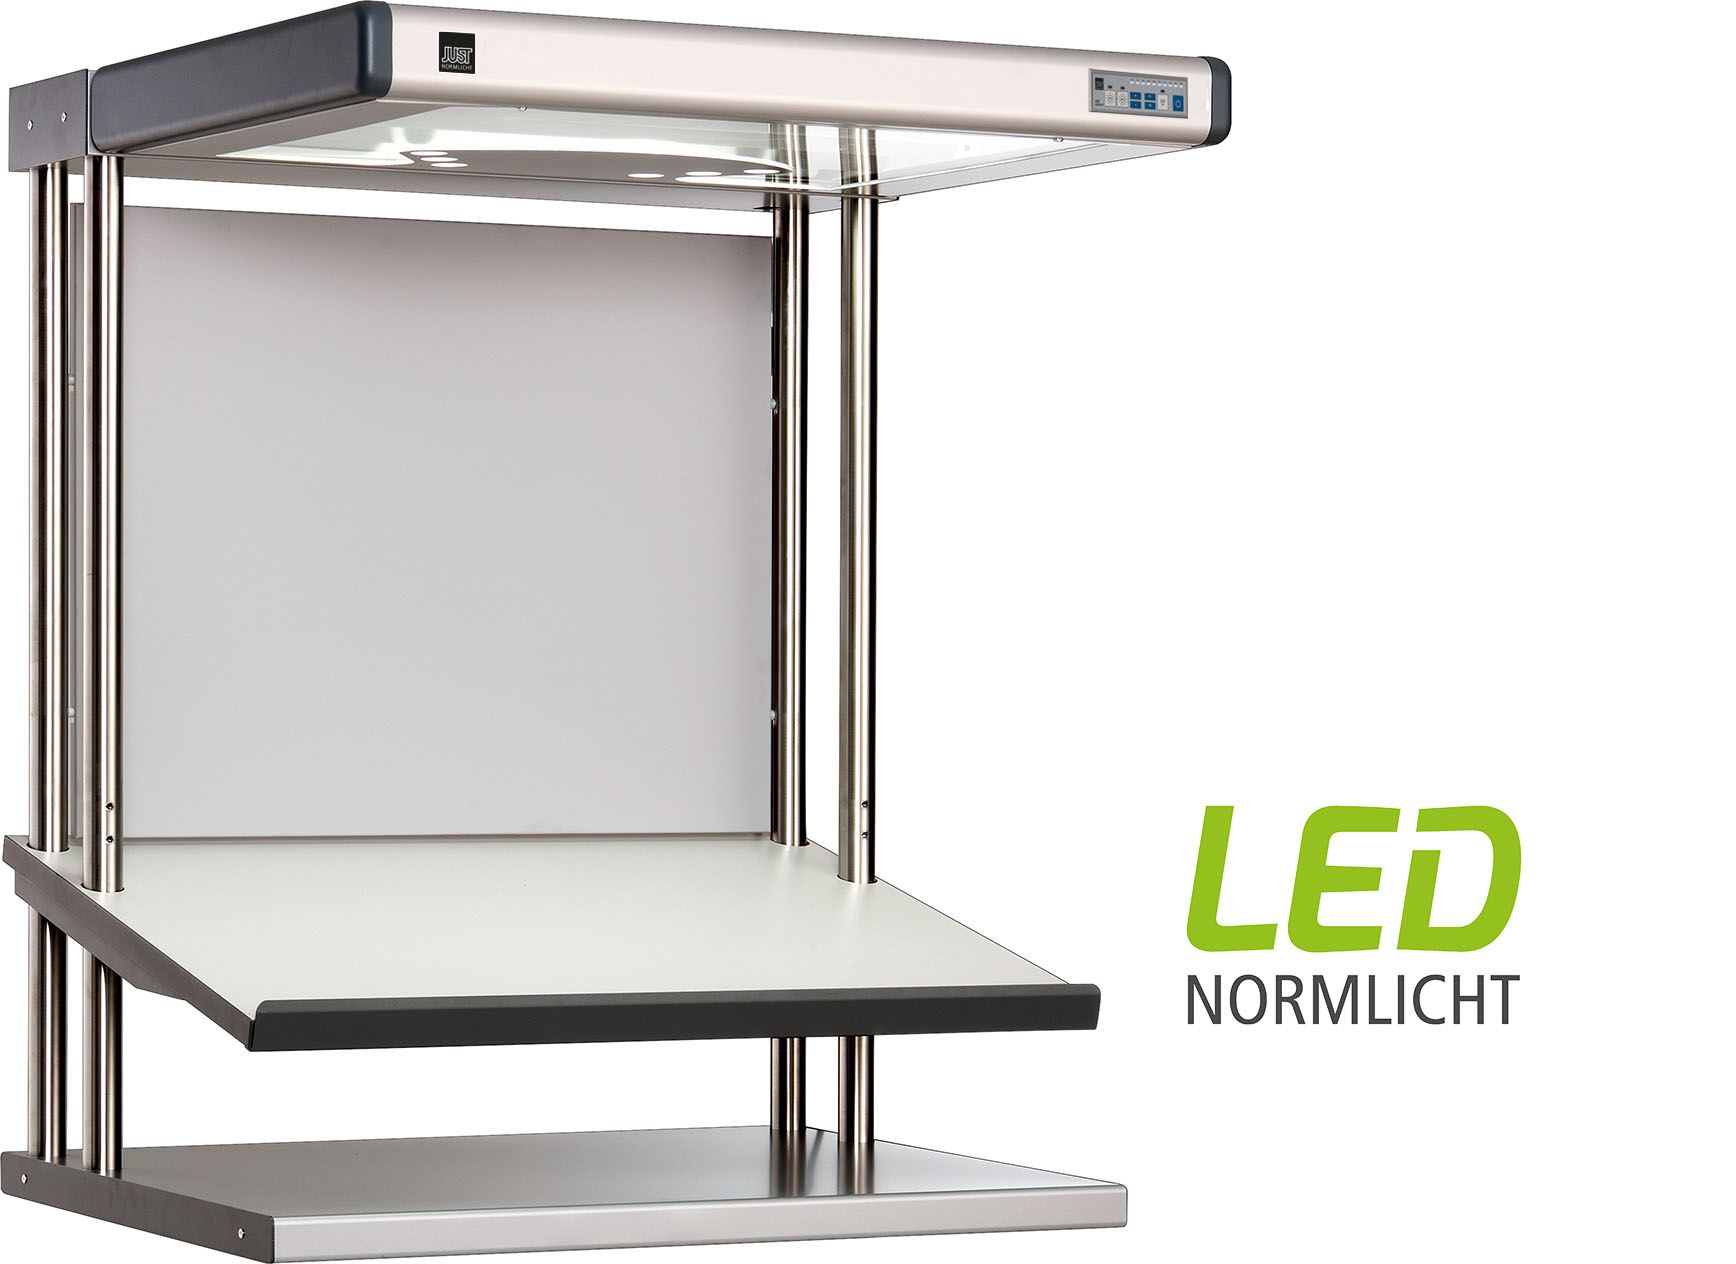 LED proofTop Multi